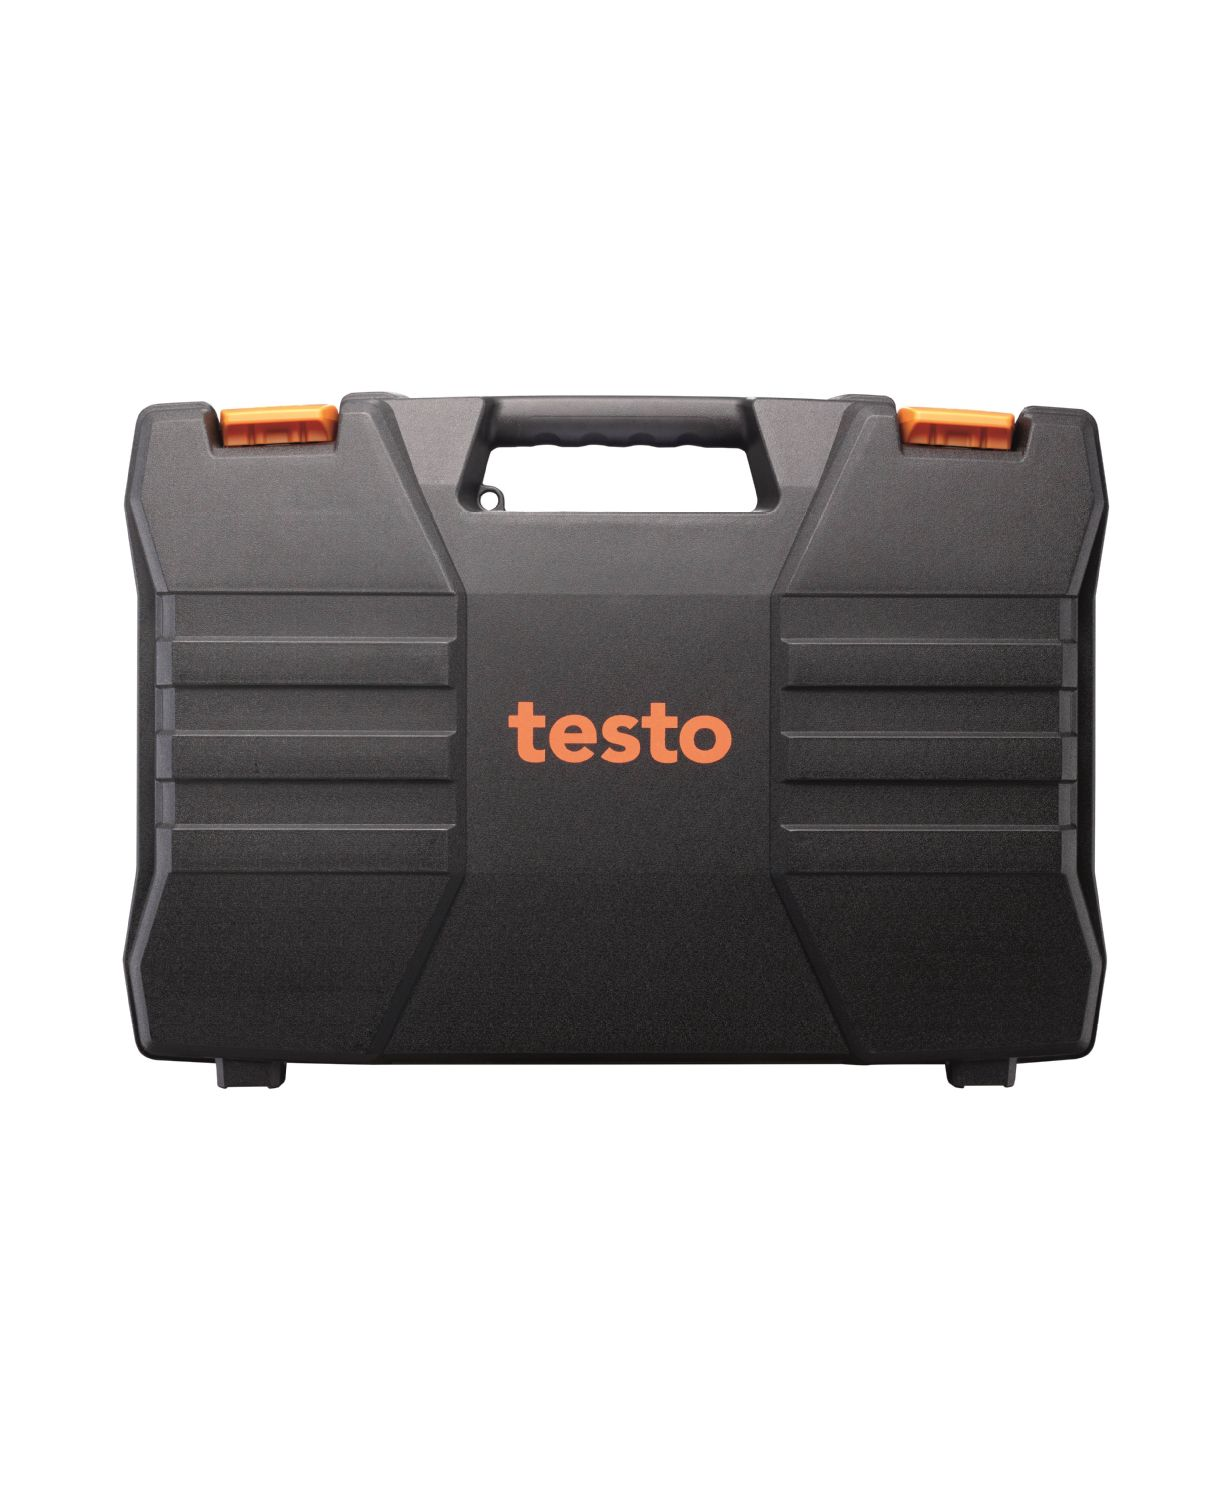 Transport case for testo 550 and accessories